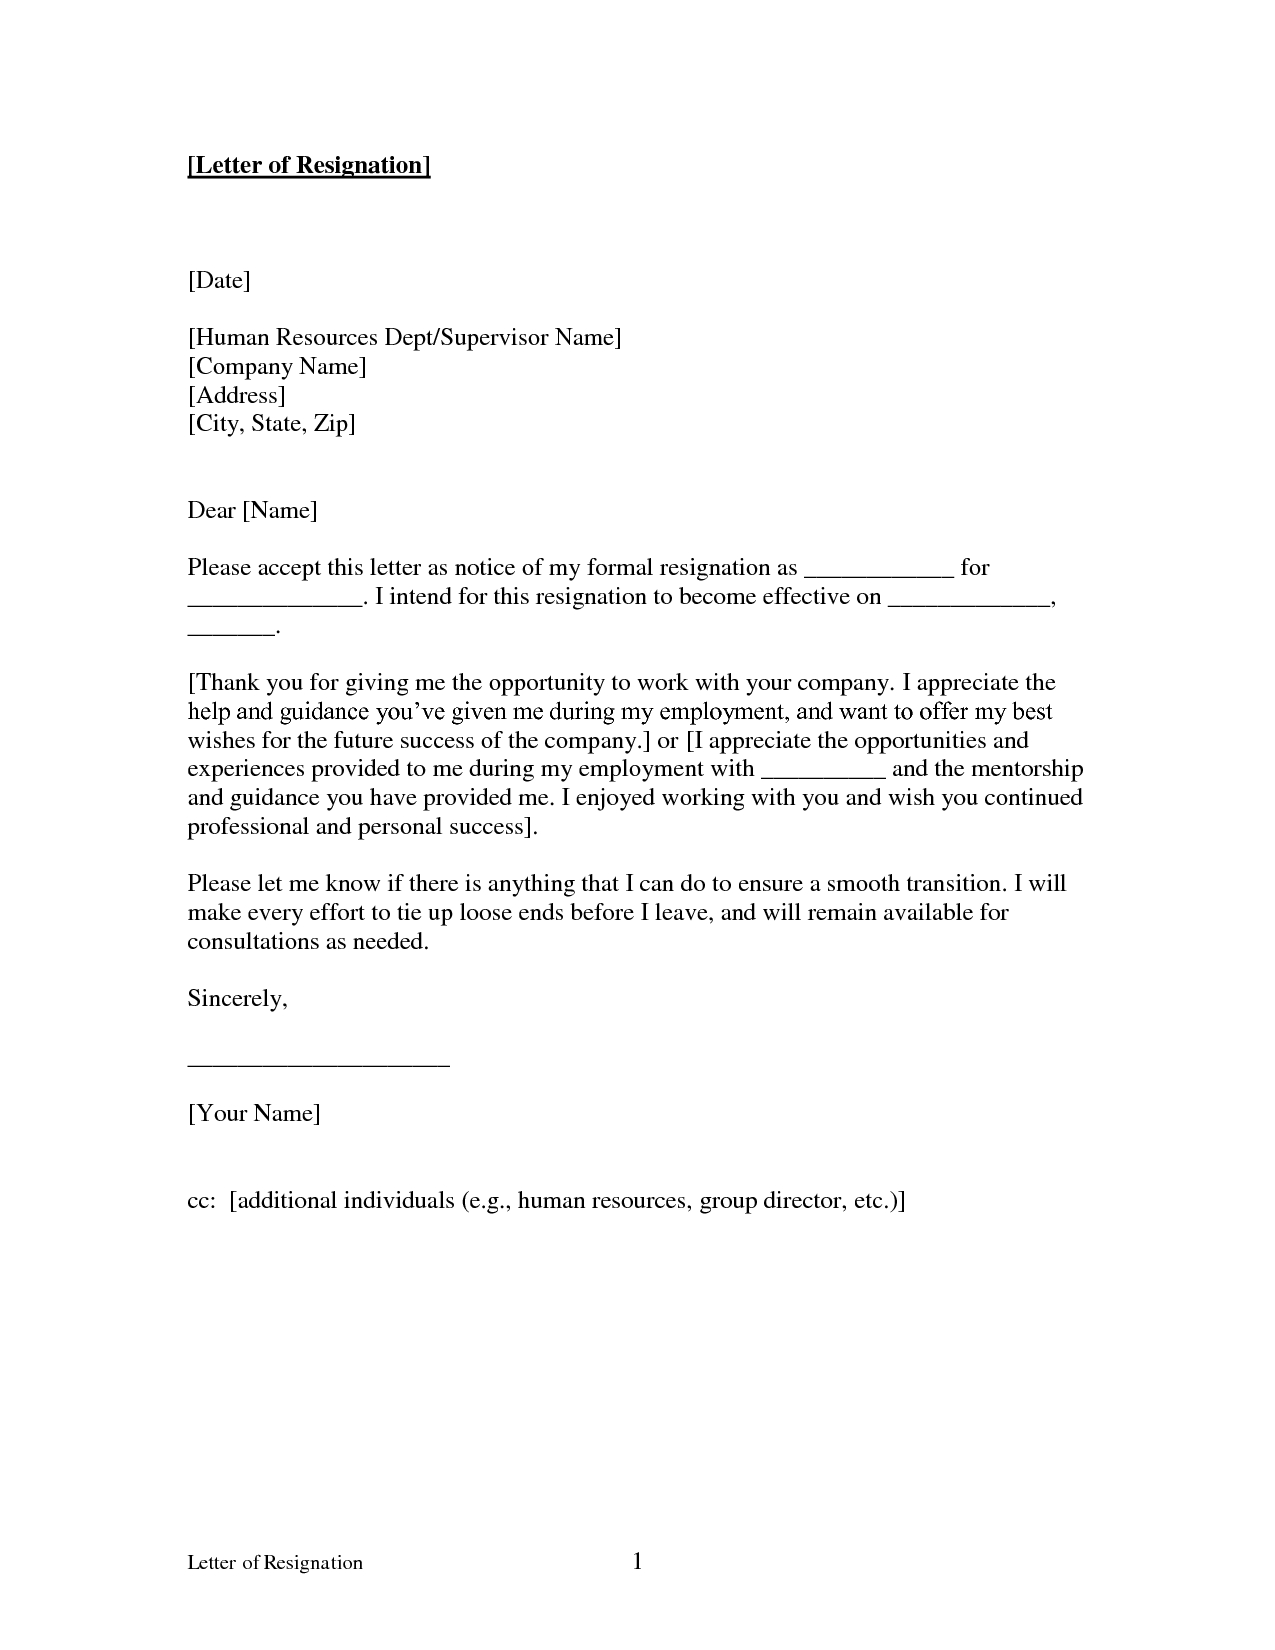 Letter Of Intent to Take Legal Action Template - Printable Sample Letter Of Resignation form